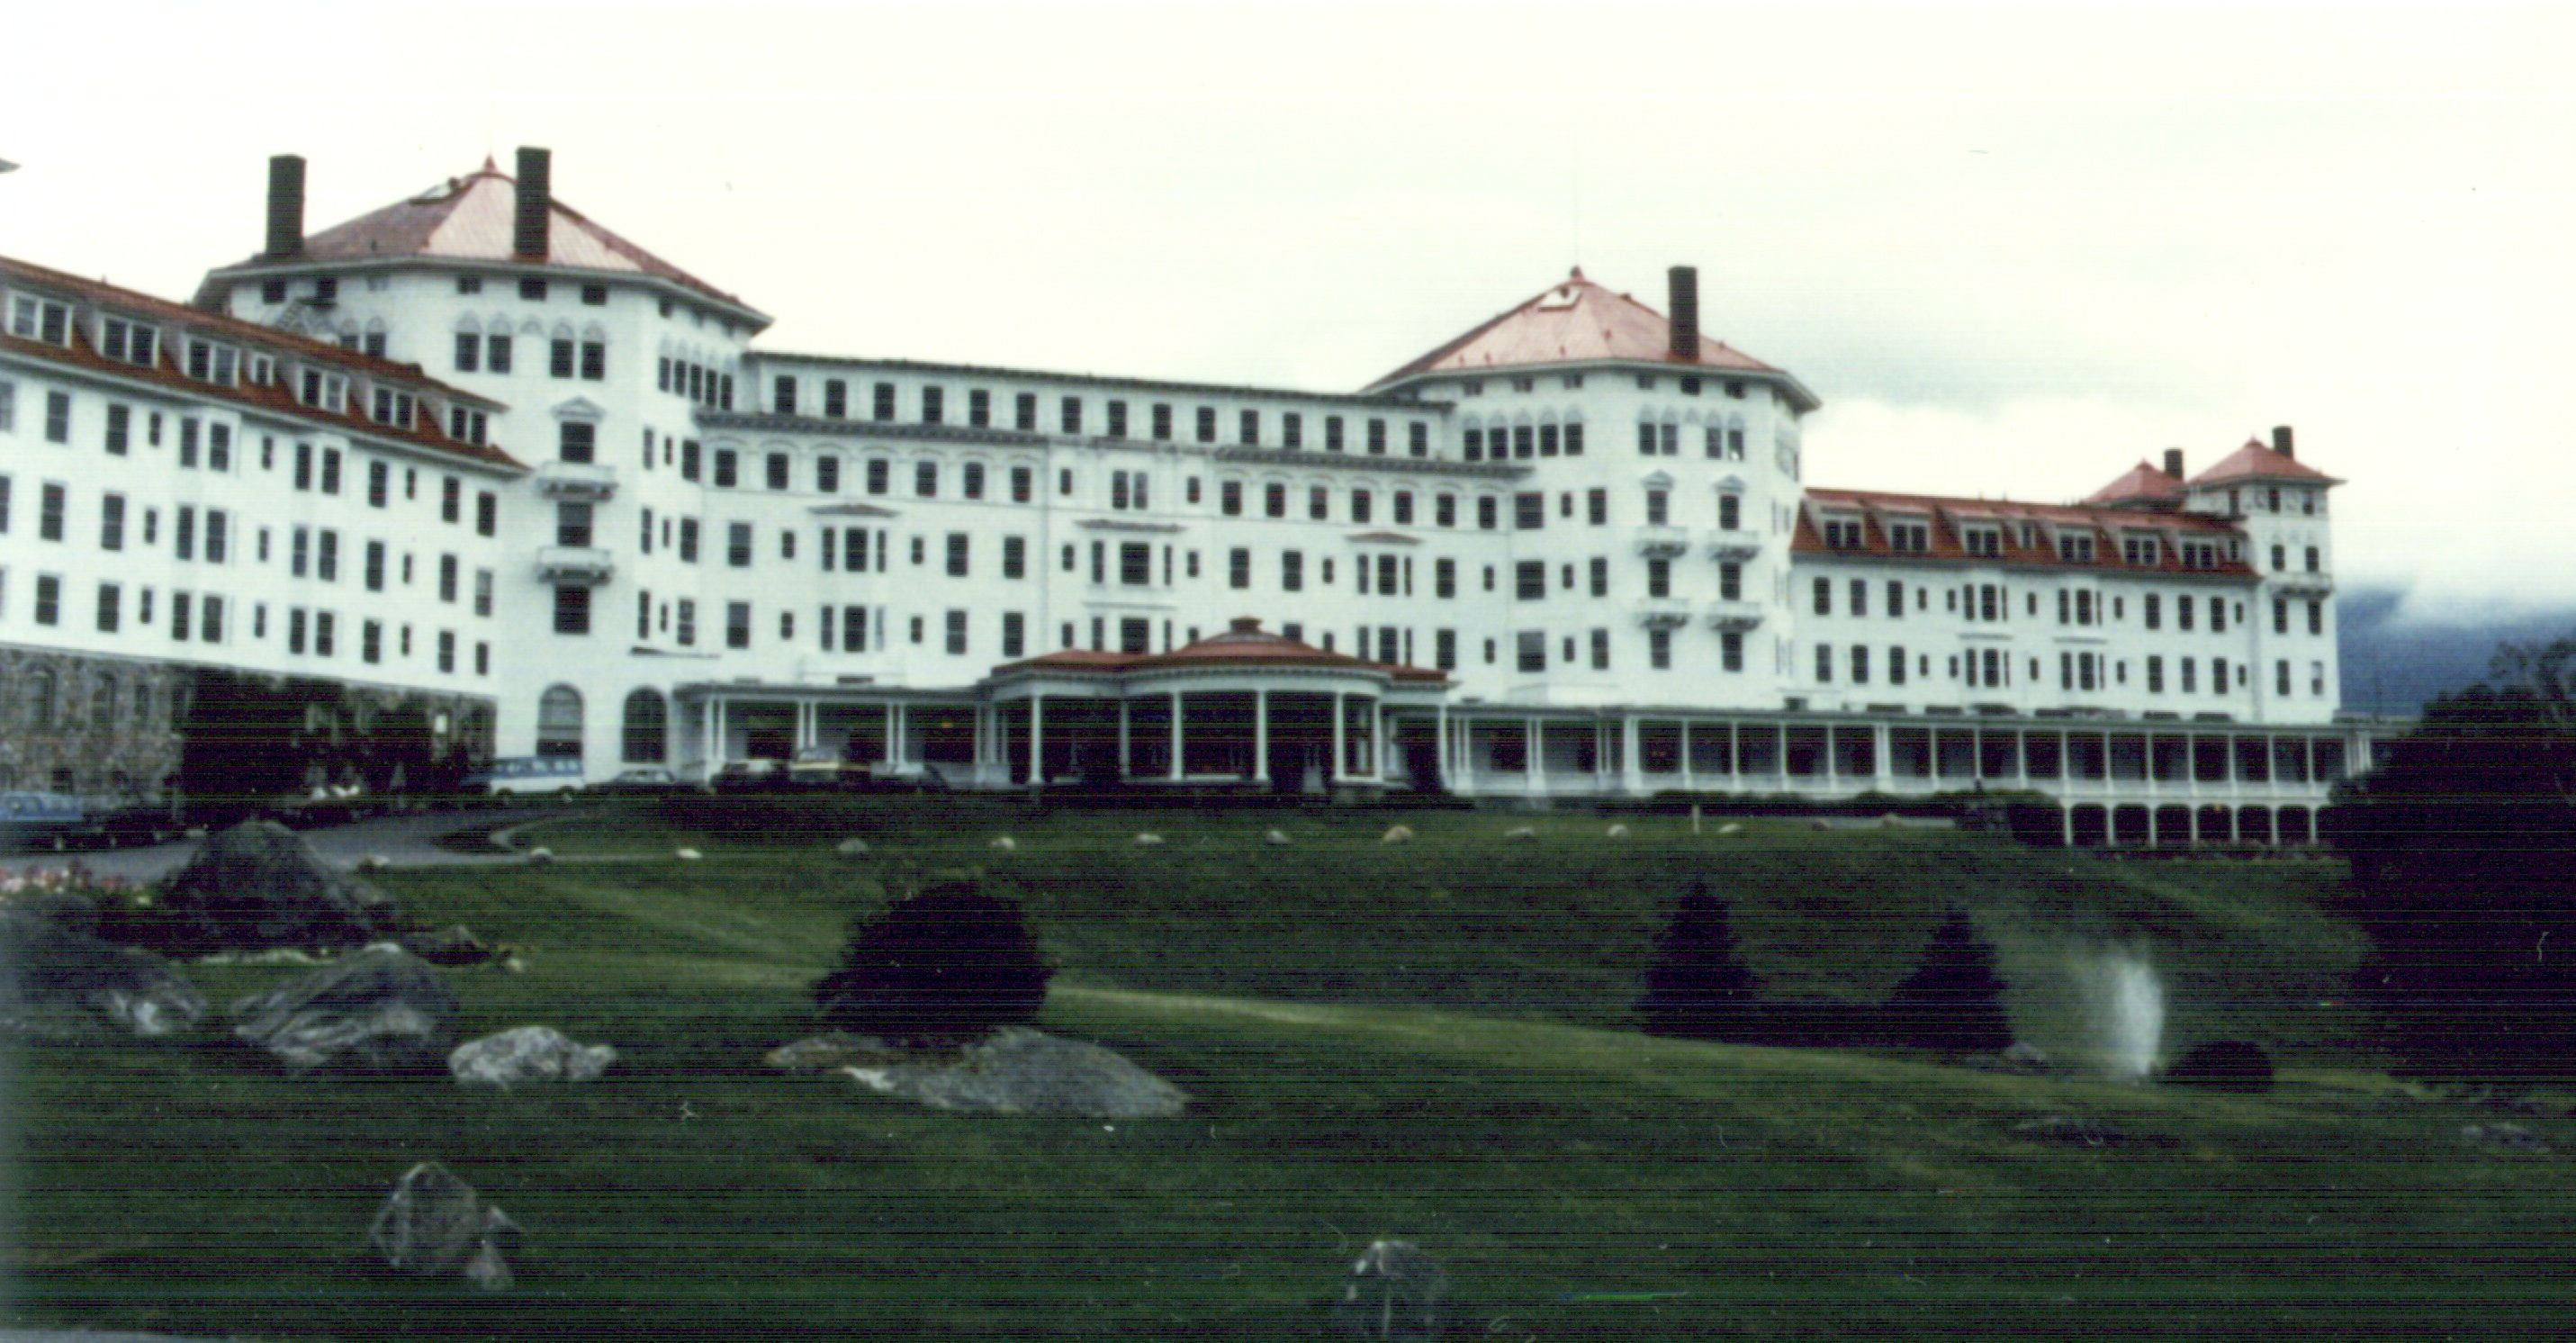 the bretton woods system essay The united nations monetary and financial conference was held in july 1944 at the mount washington hotel in bretton woods, new hampshire, where delegates from forty-four nations created a new international monetary system known as the bretton woods system.